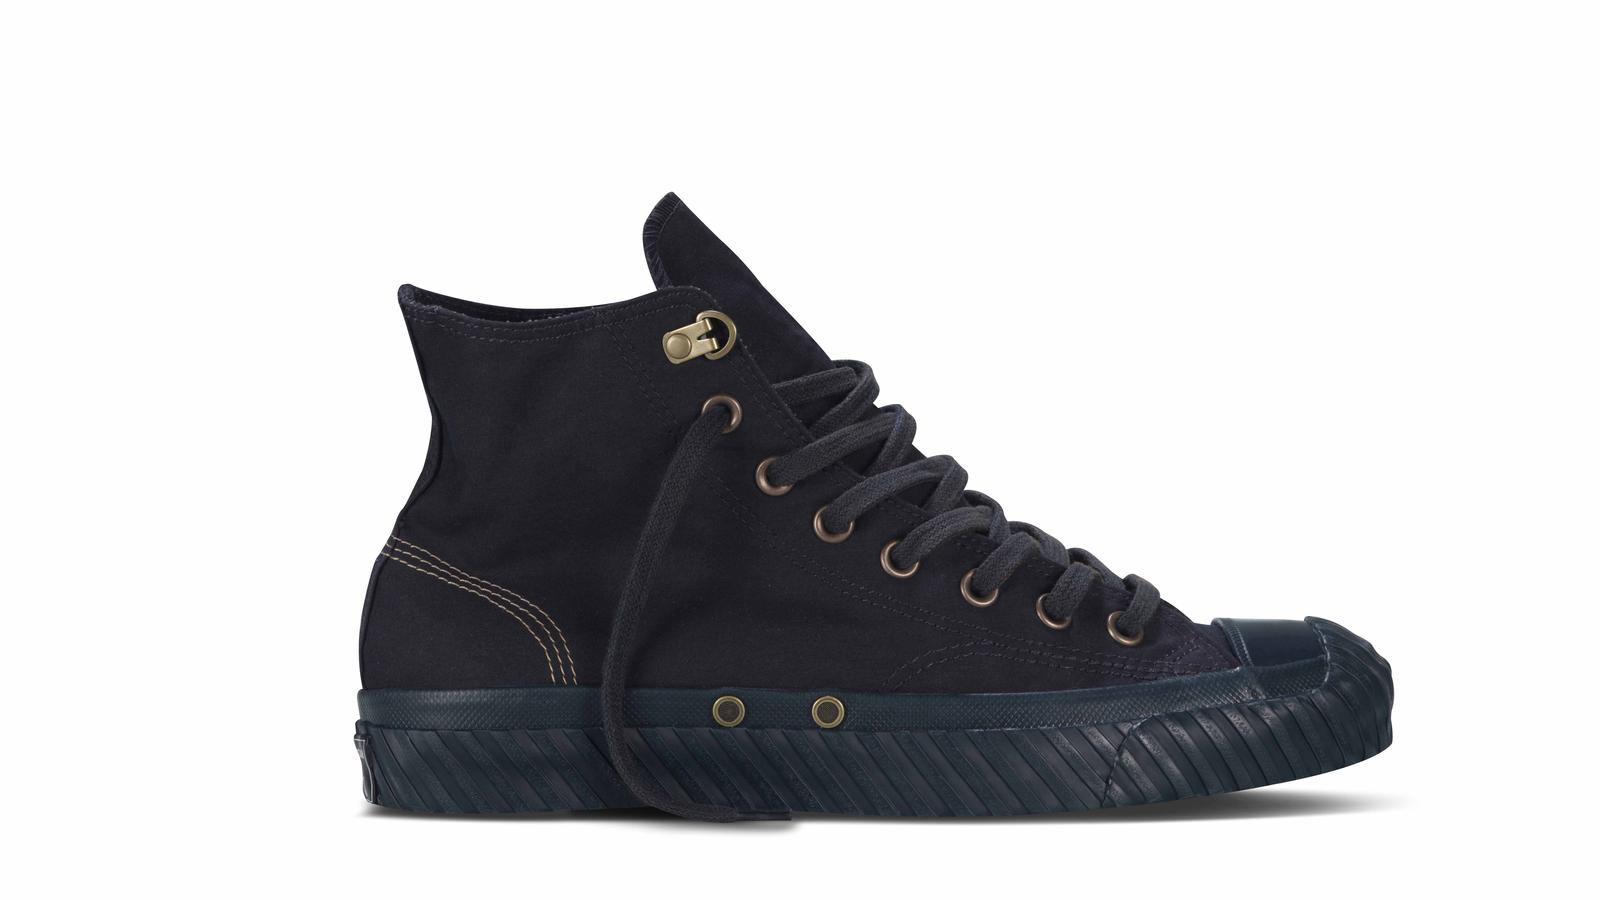 Nigel Cabourn For Converse Bosey Boot. Right 1 Original